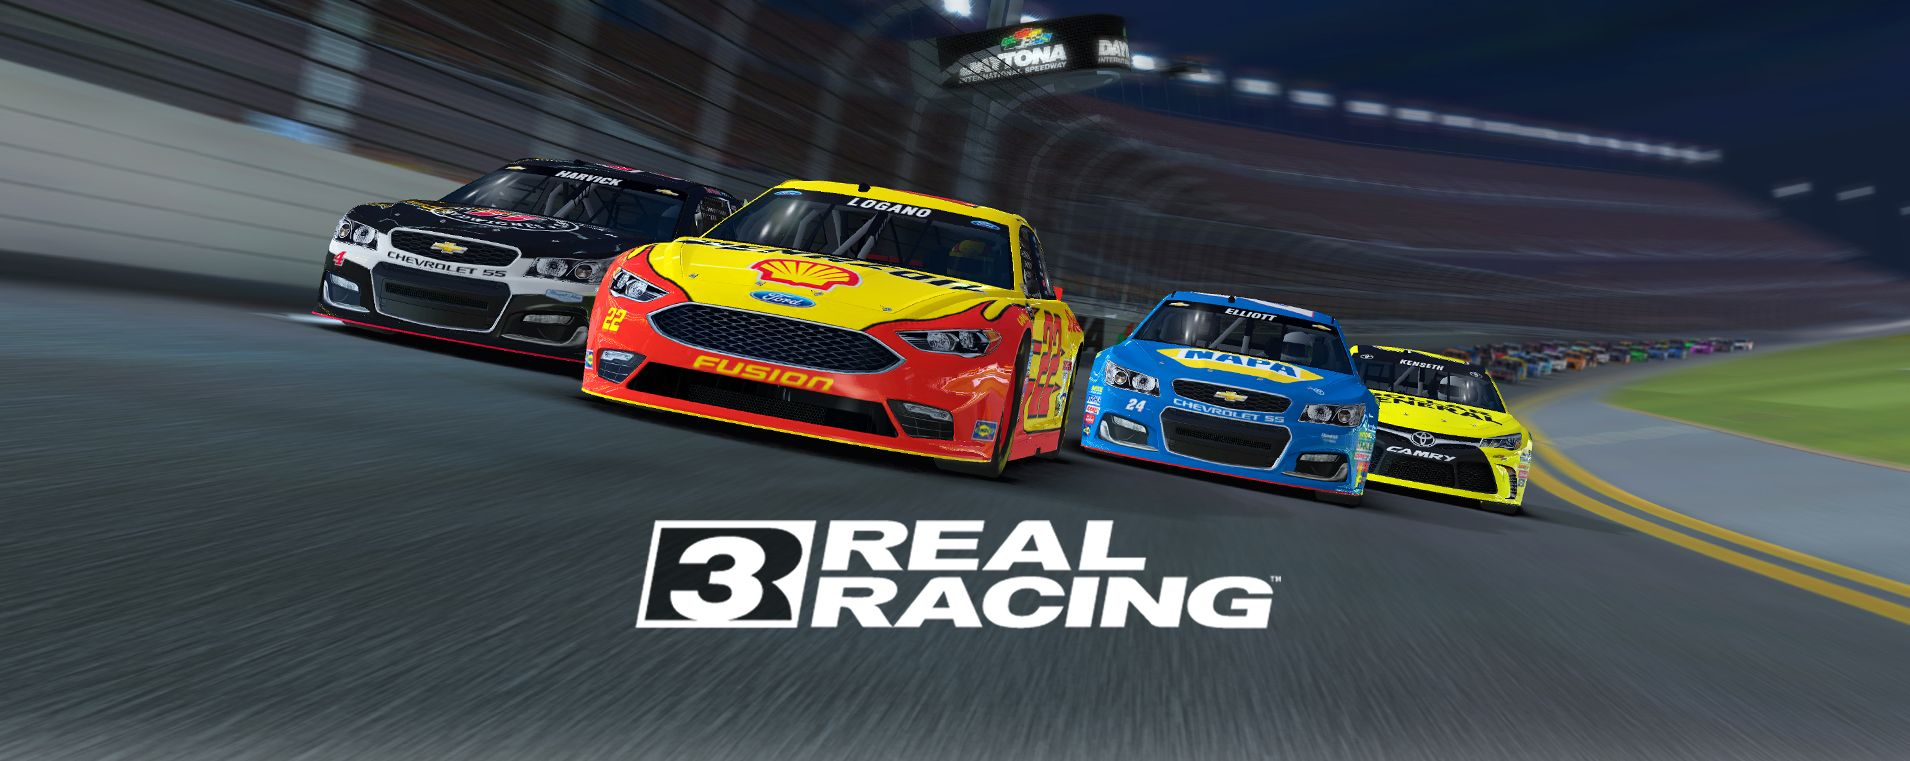 real-racing-3-daytona